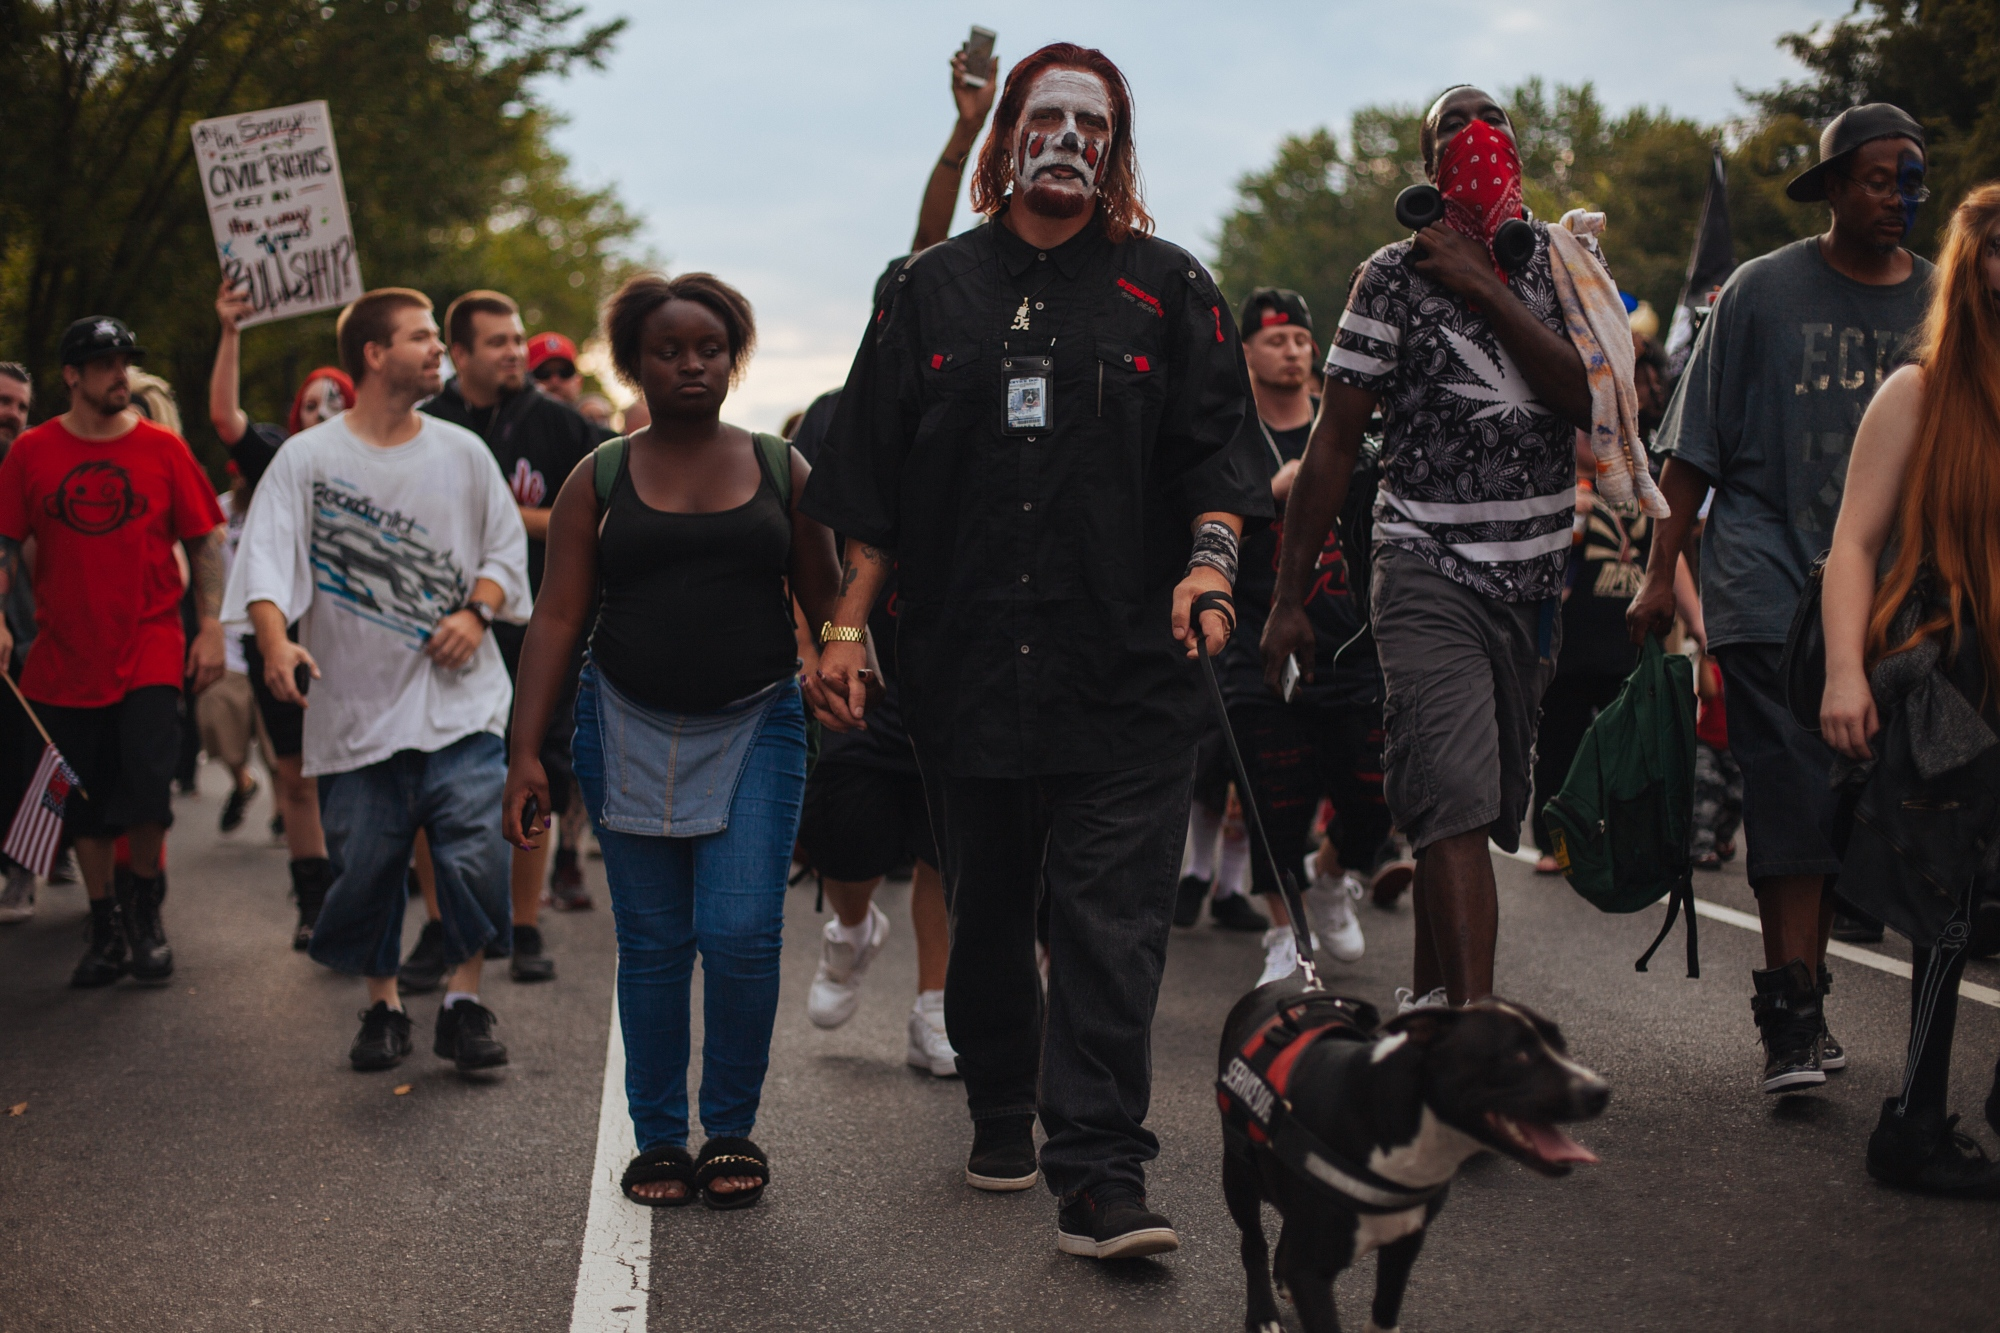 Fans of ICP (Insane Clown Posse) lead a group of Juggalo and juggalette marchers down Constitution Avenue NW during the Juggalo March on Washington, the march was organized to protest the FBI's classification of Juggalos as a gang, National Mall, Washington, D.C., U.S. September 16, 2017.